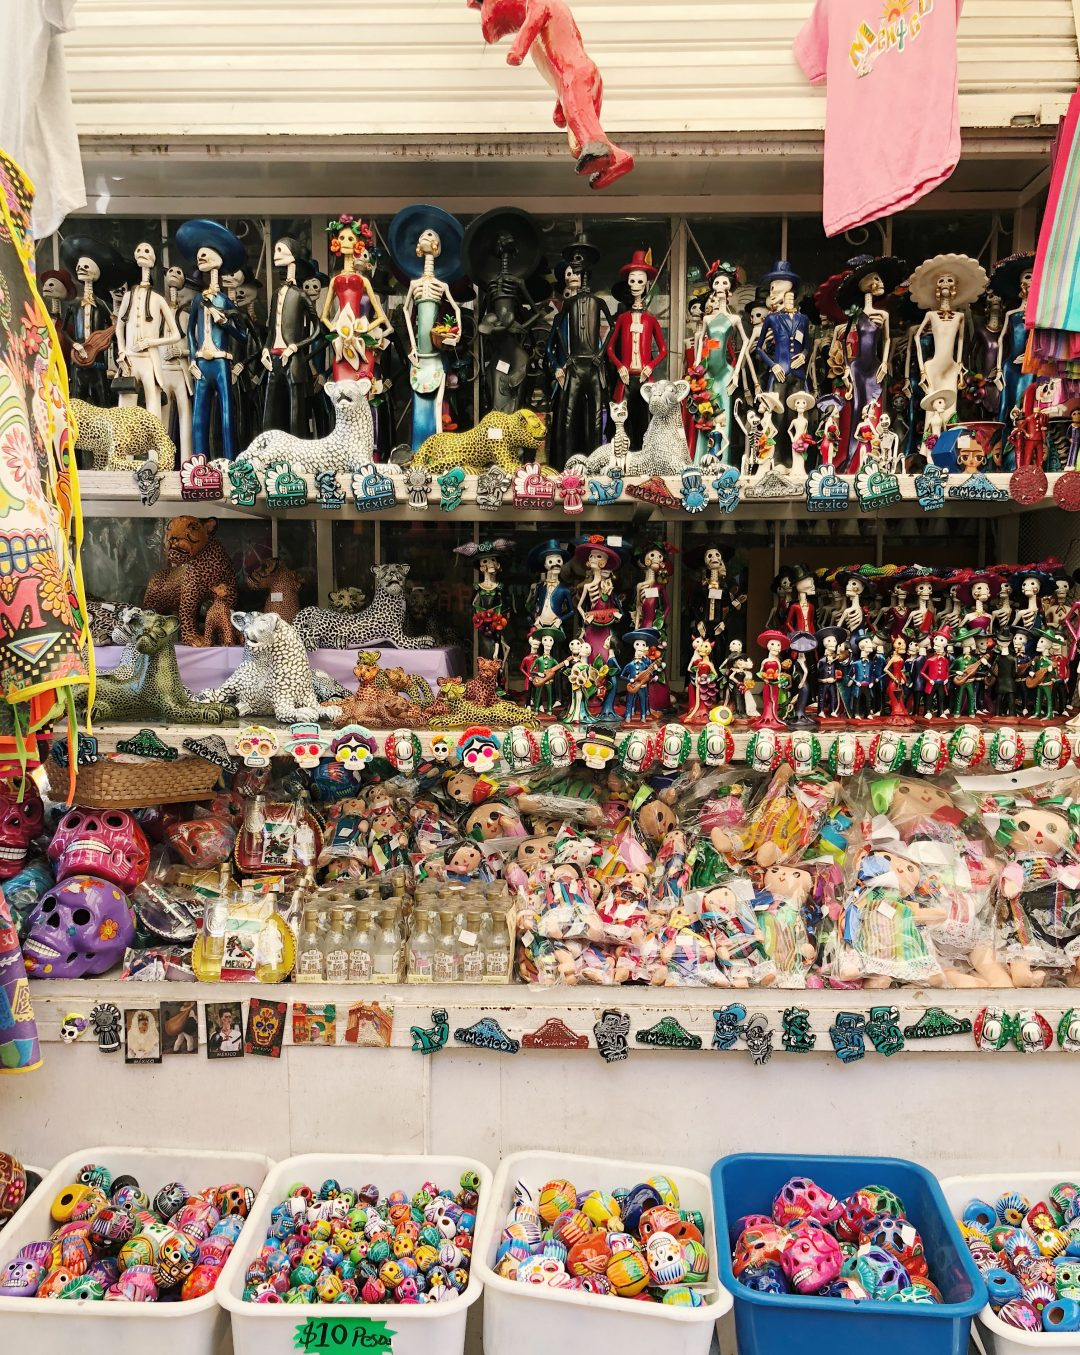 Mexico City Travel Guide | The best of Mexico City with what to do, see and eat during a long weekend in CDMX.